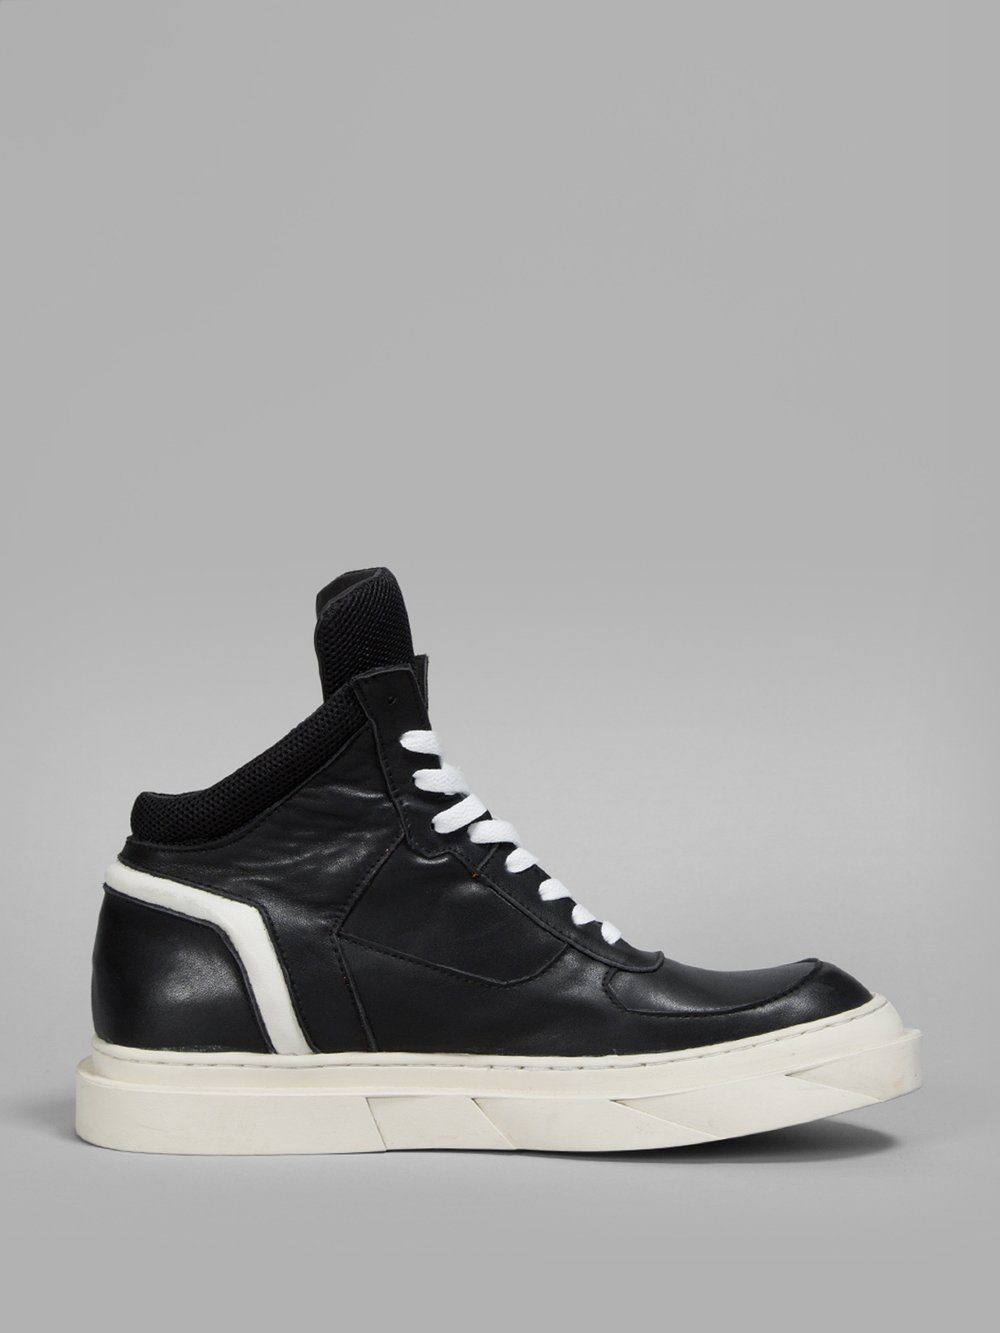 FOOTWEAR - Low-tops & sneakers D.Gnak Fake For Sale tfSyuAj